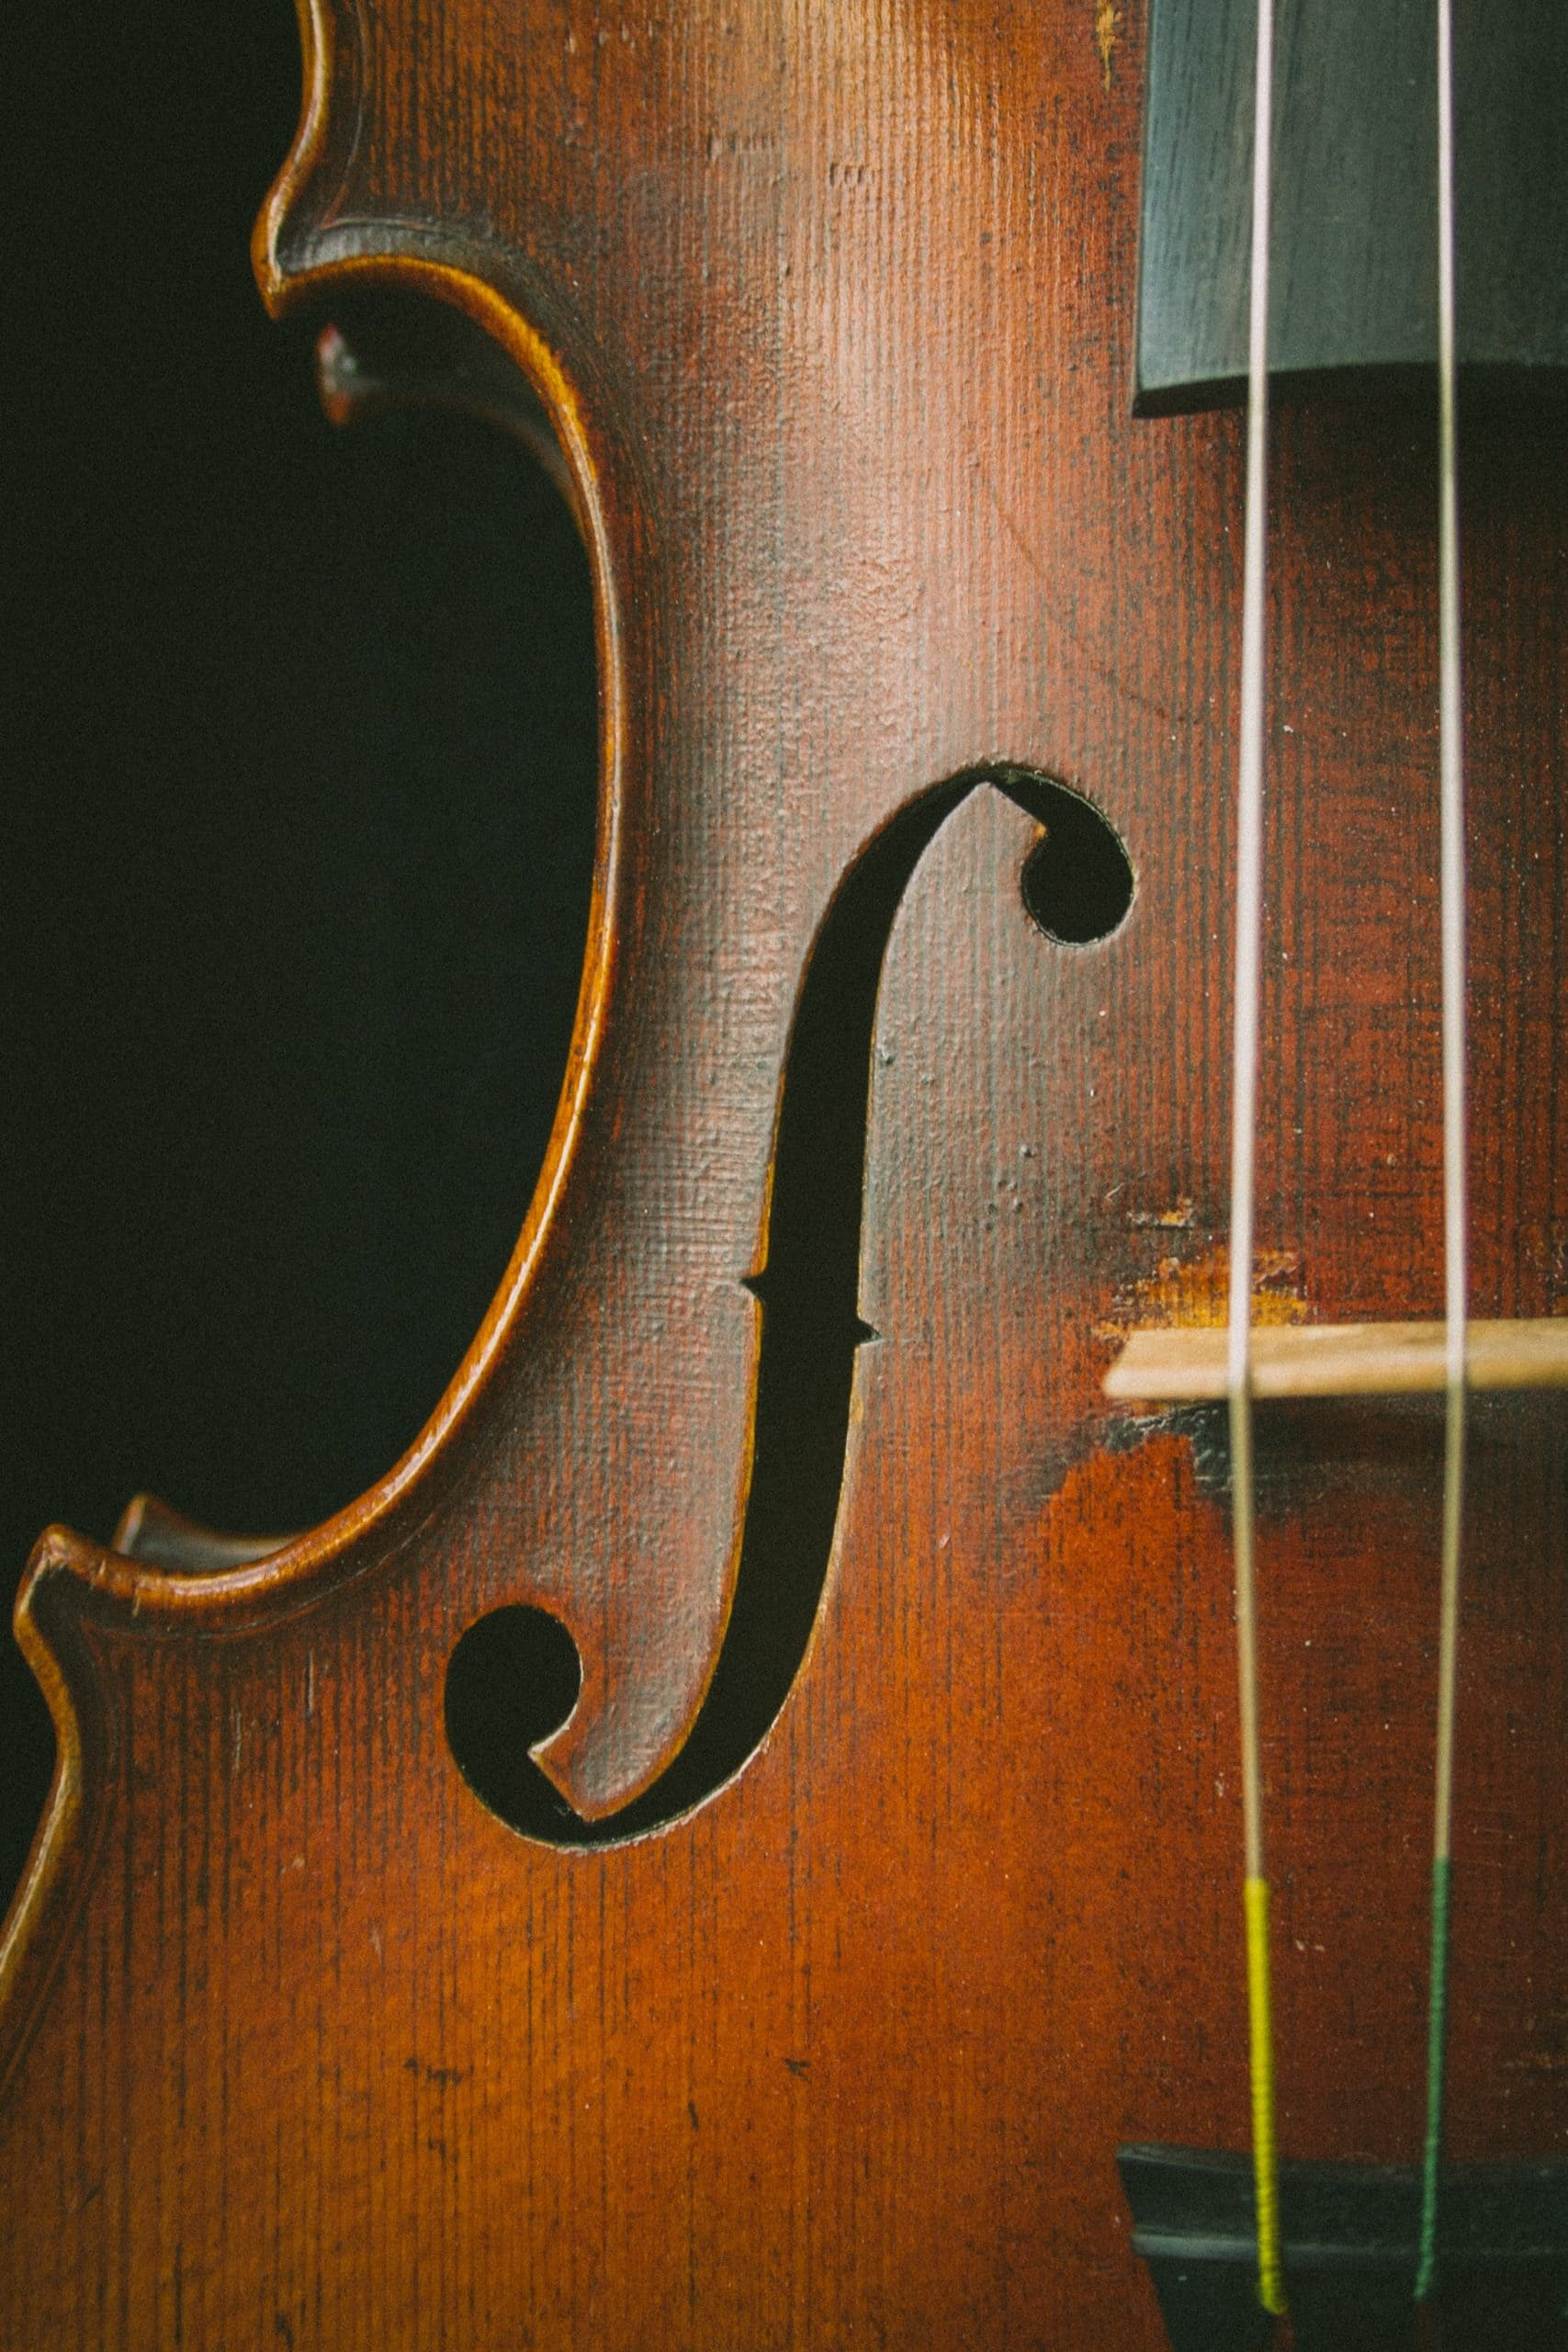 Stock photo of a violin.